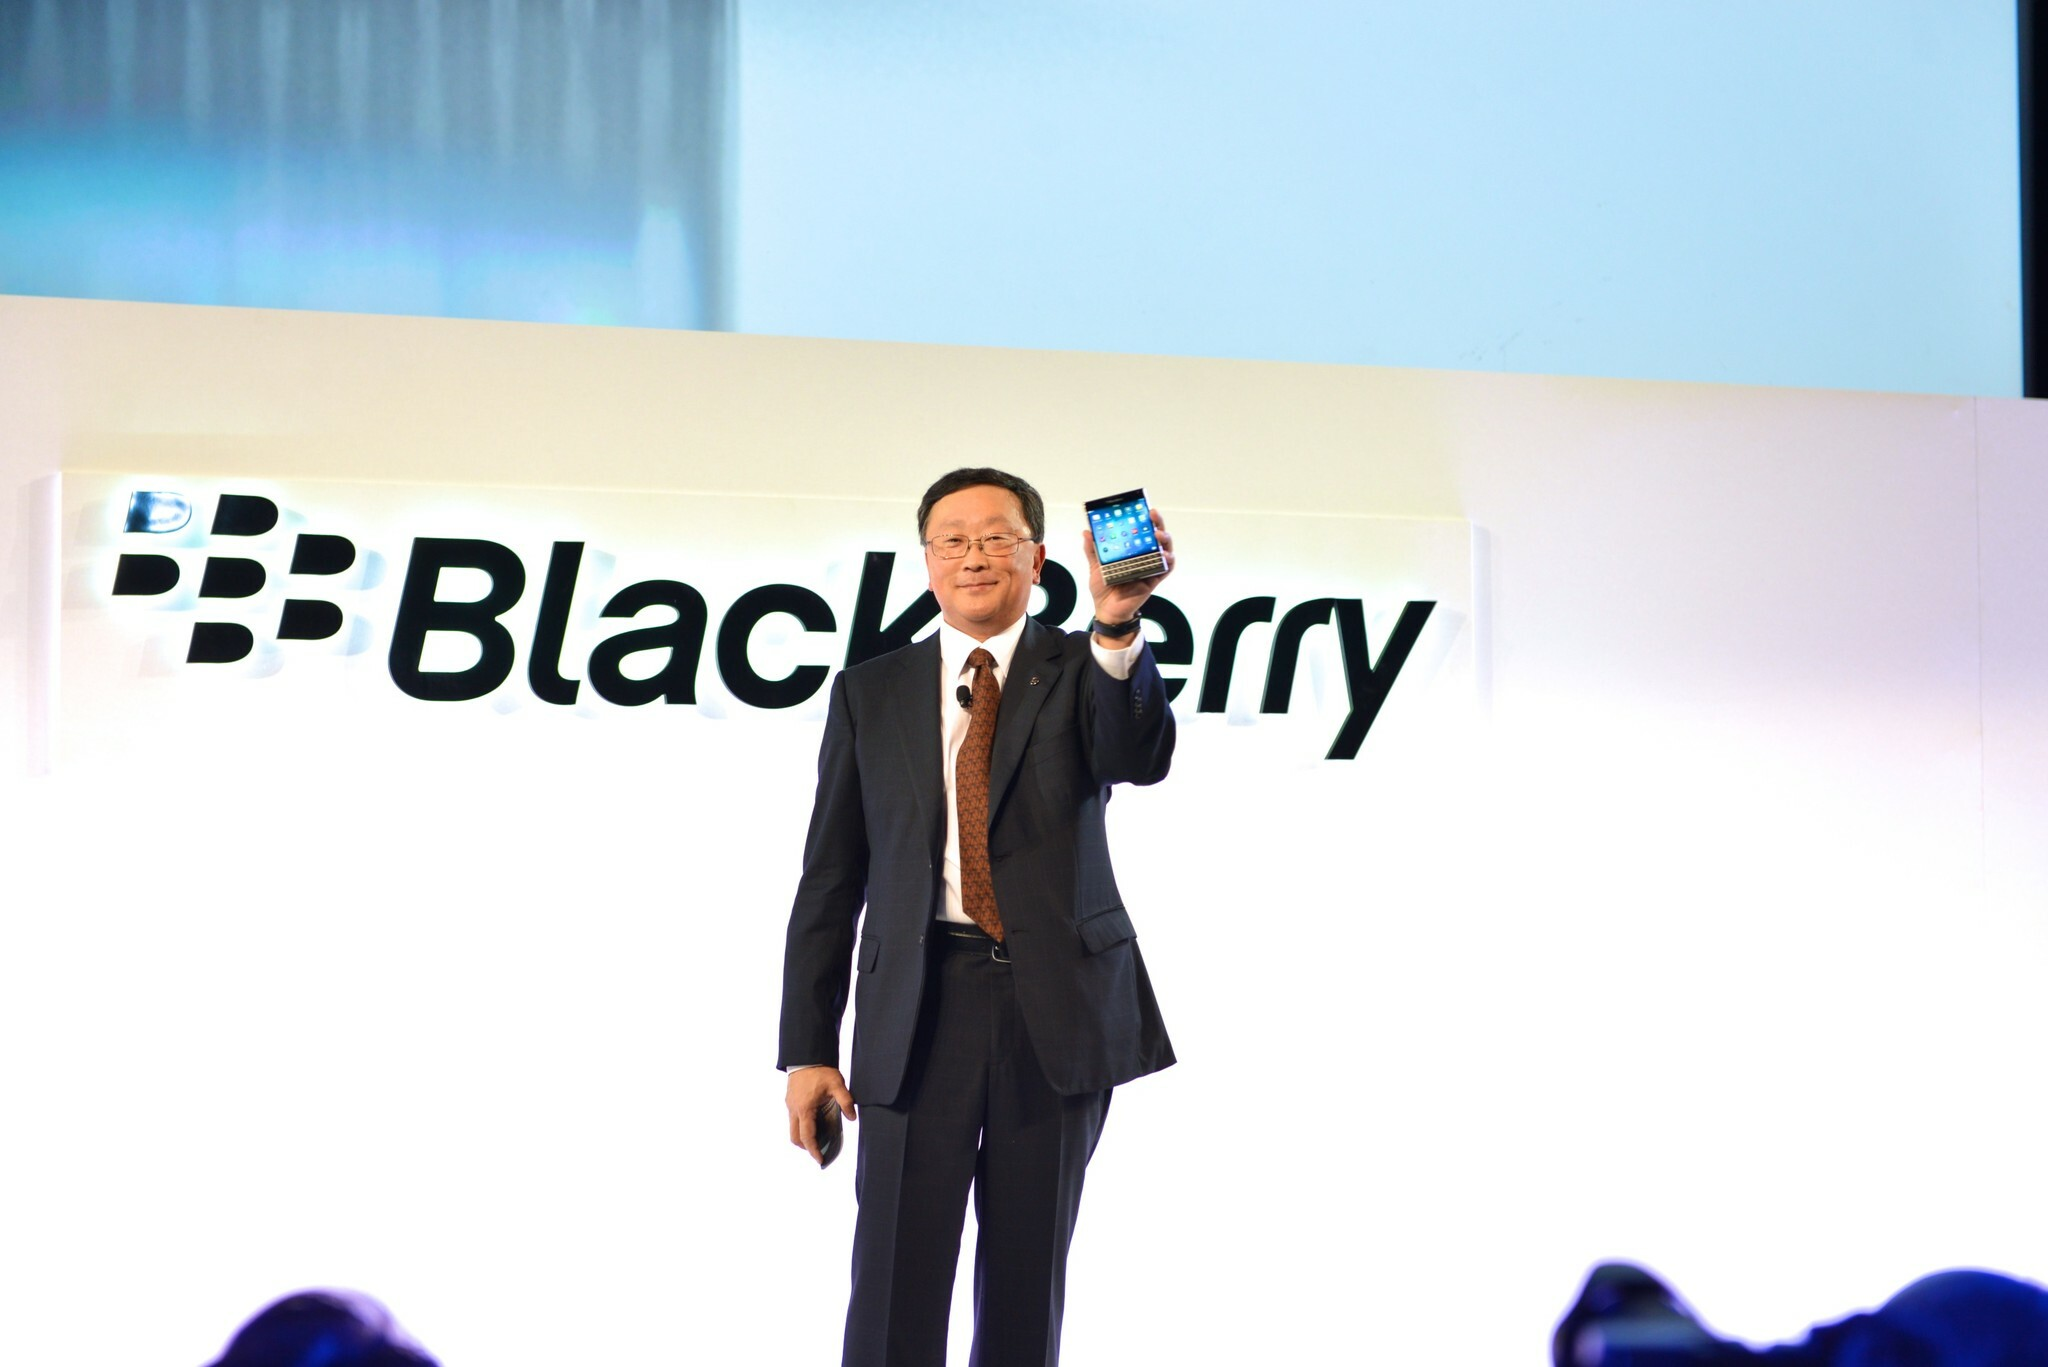 'BlackBerry has survived; now we have to start looking at growth'